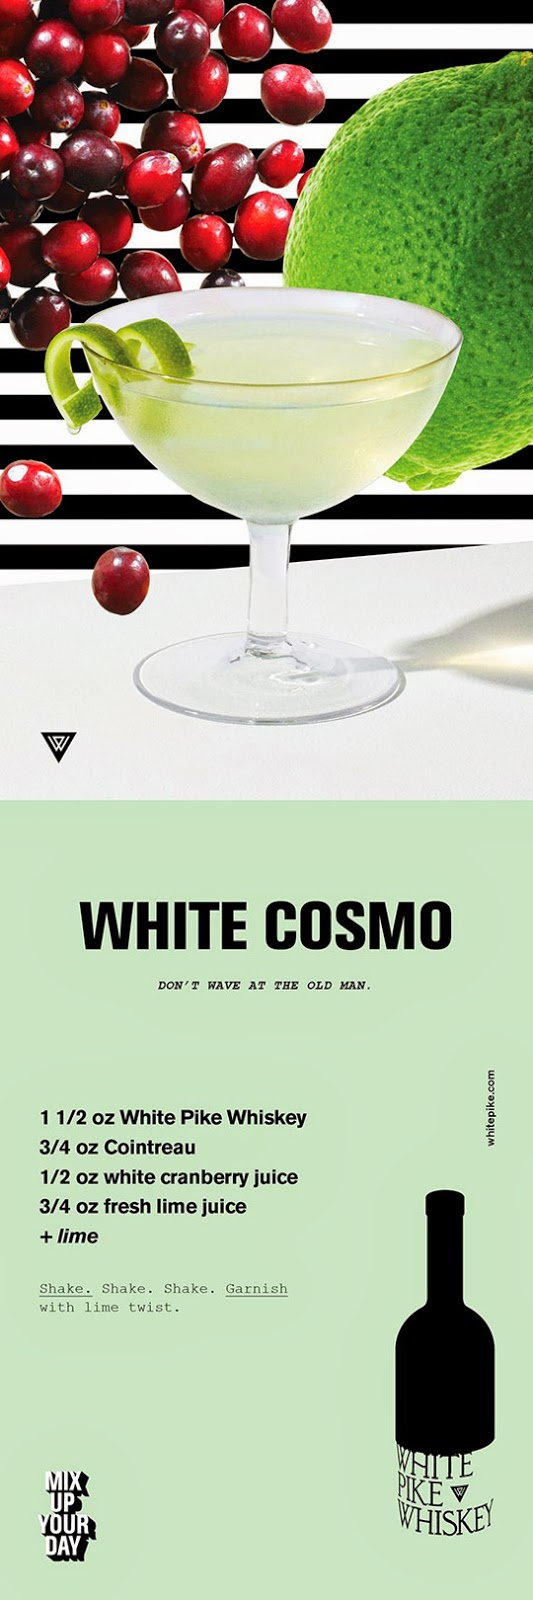 White Pike White Cosmo Recipe Card